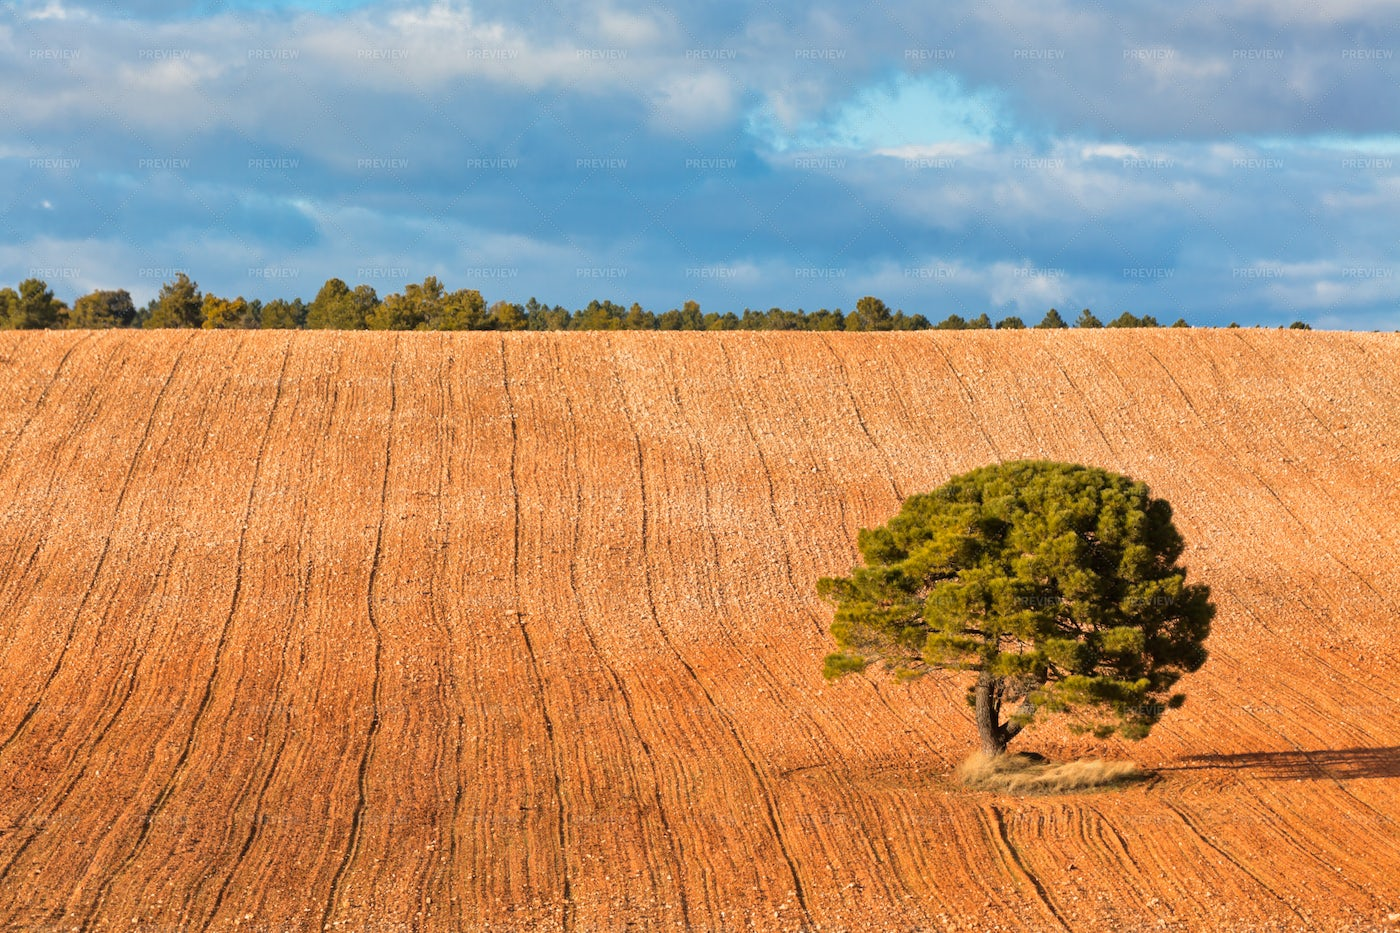 Lonely Tree In A Field: Stock Photos